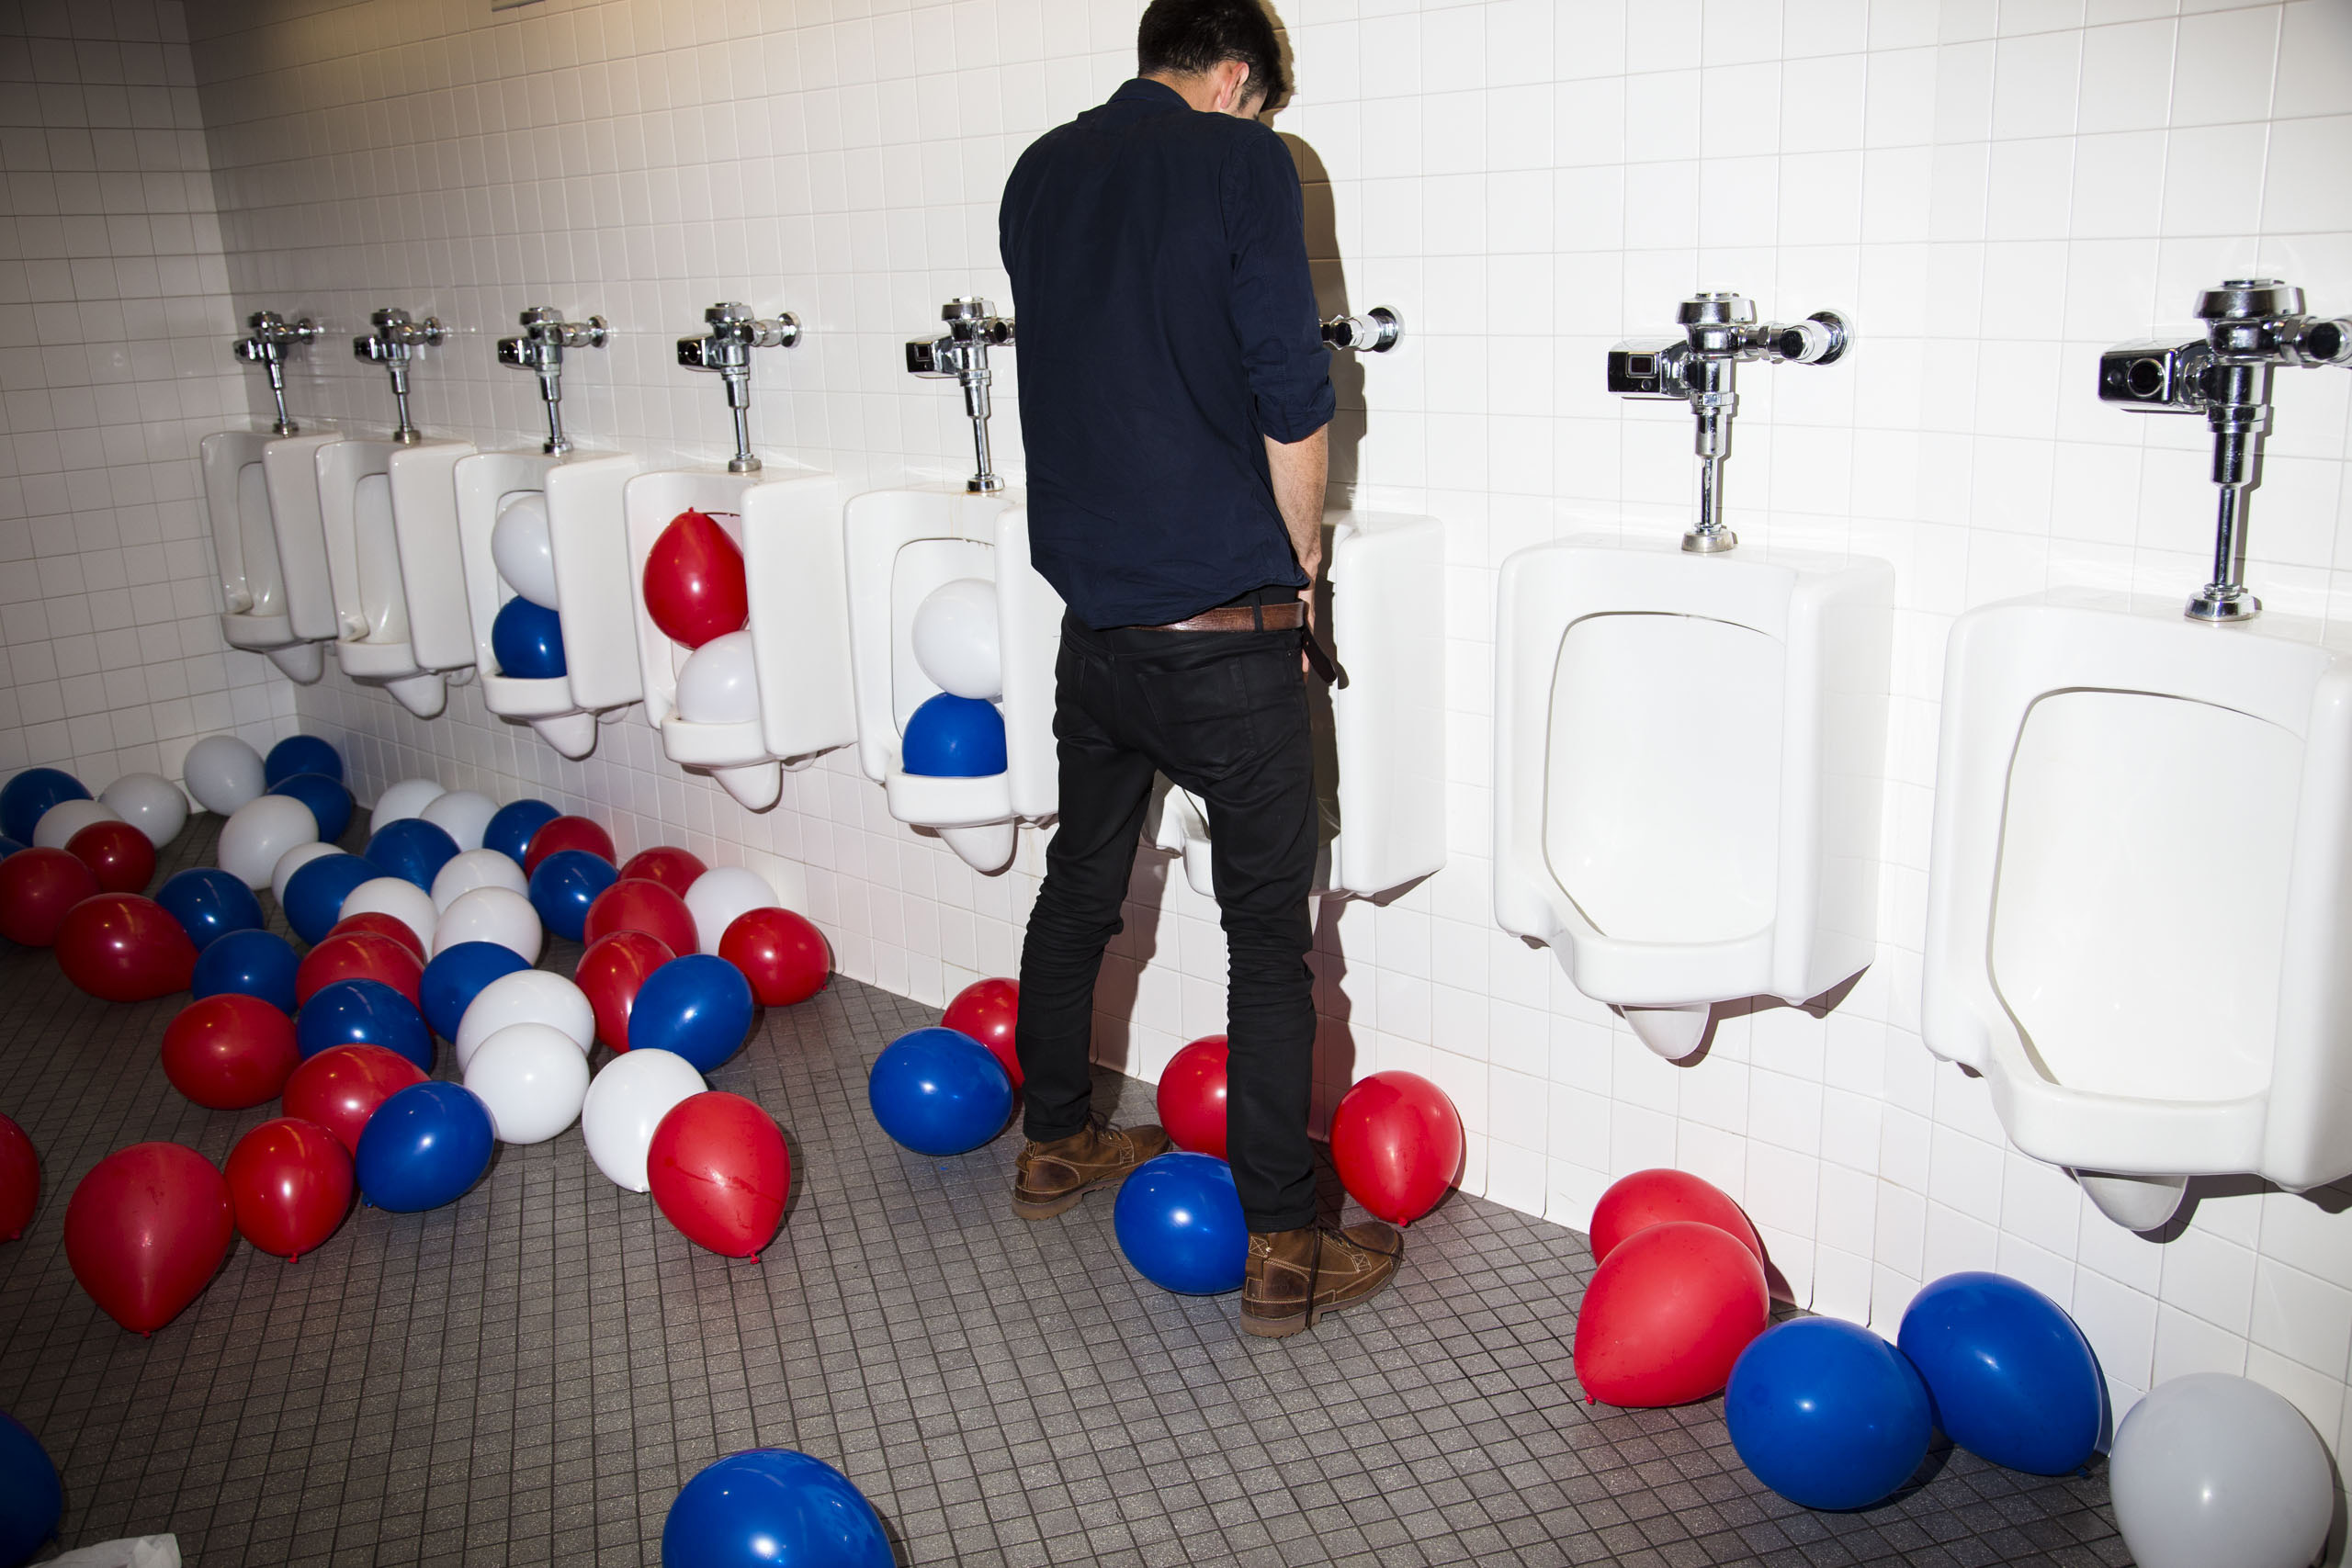 The mens room at the end of the Republican National Convention in Cleveland on Thursday, July 21, 2016.